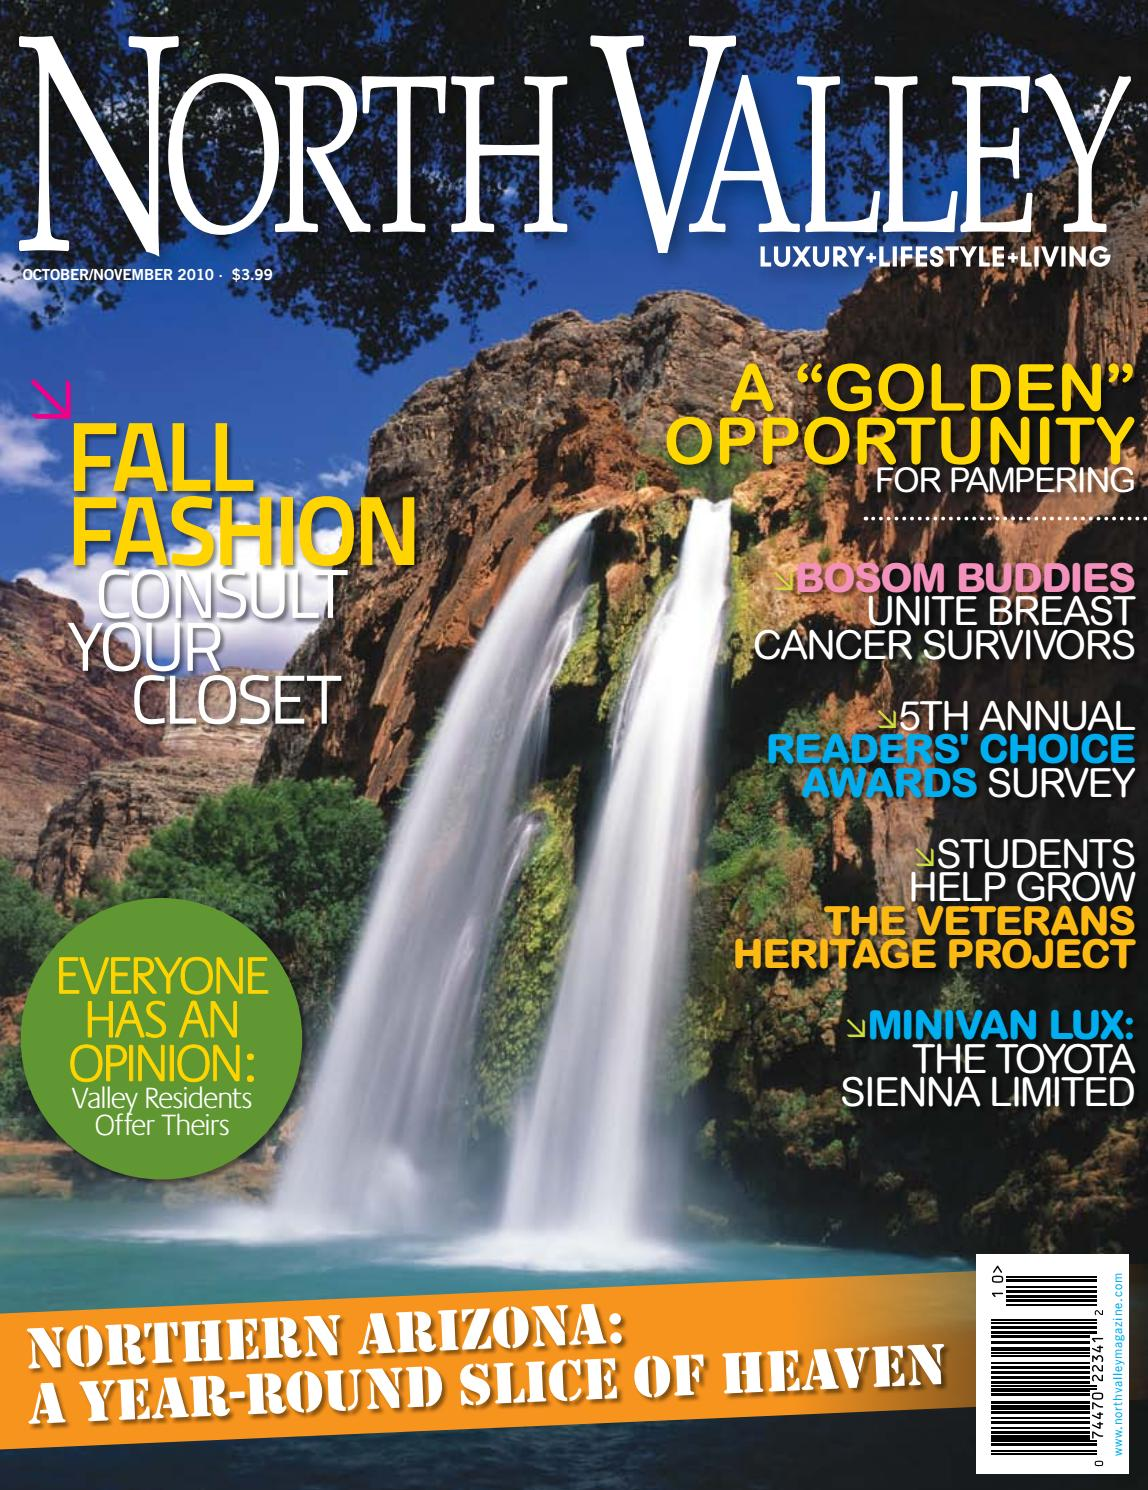 North Valley Magazine 1110 by Times Media Group issuu